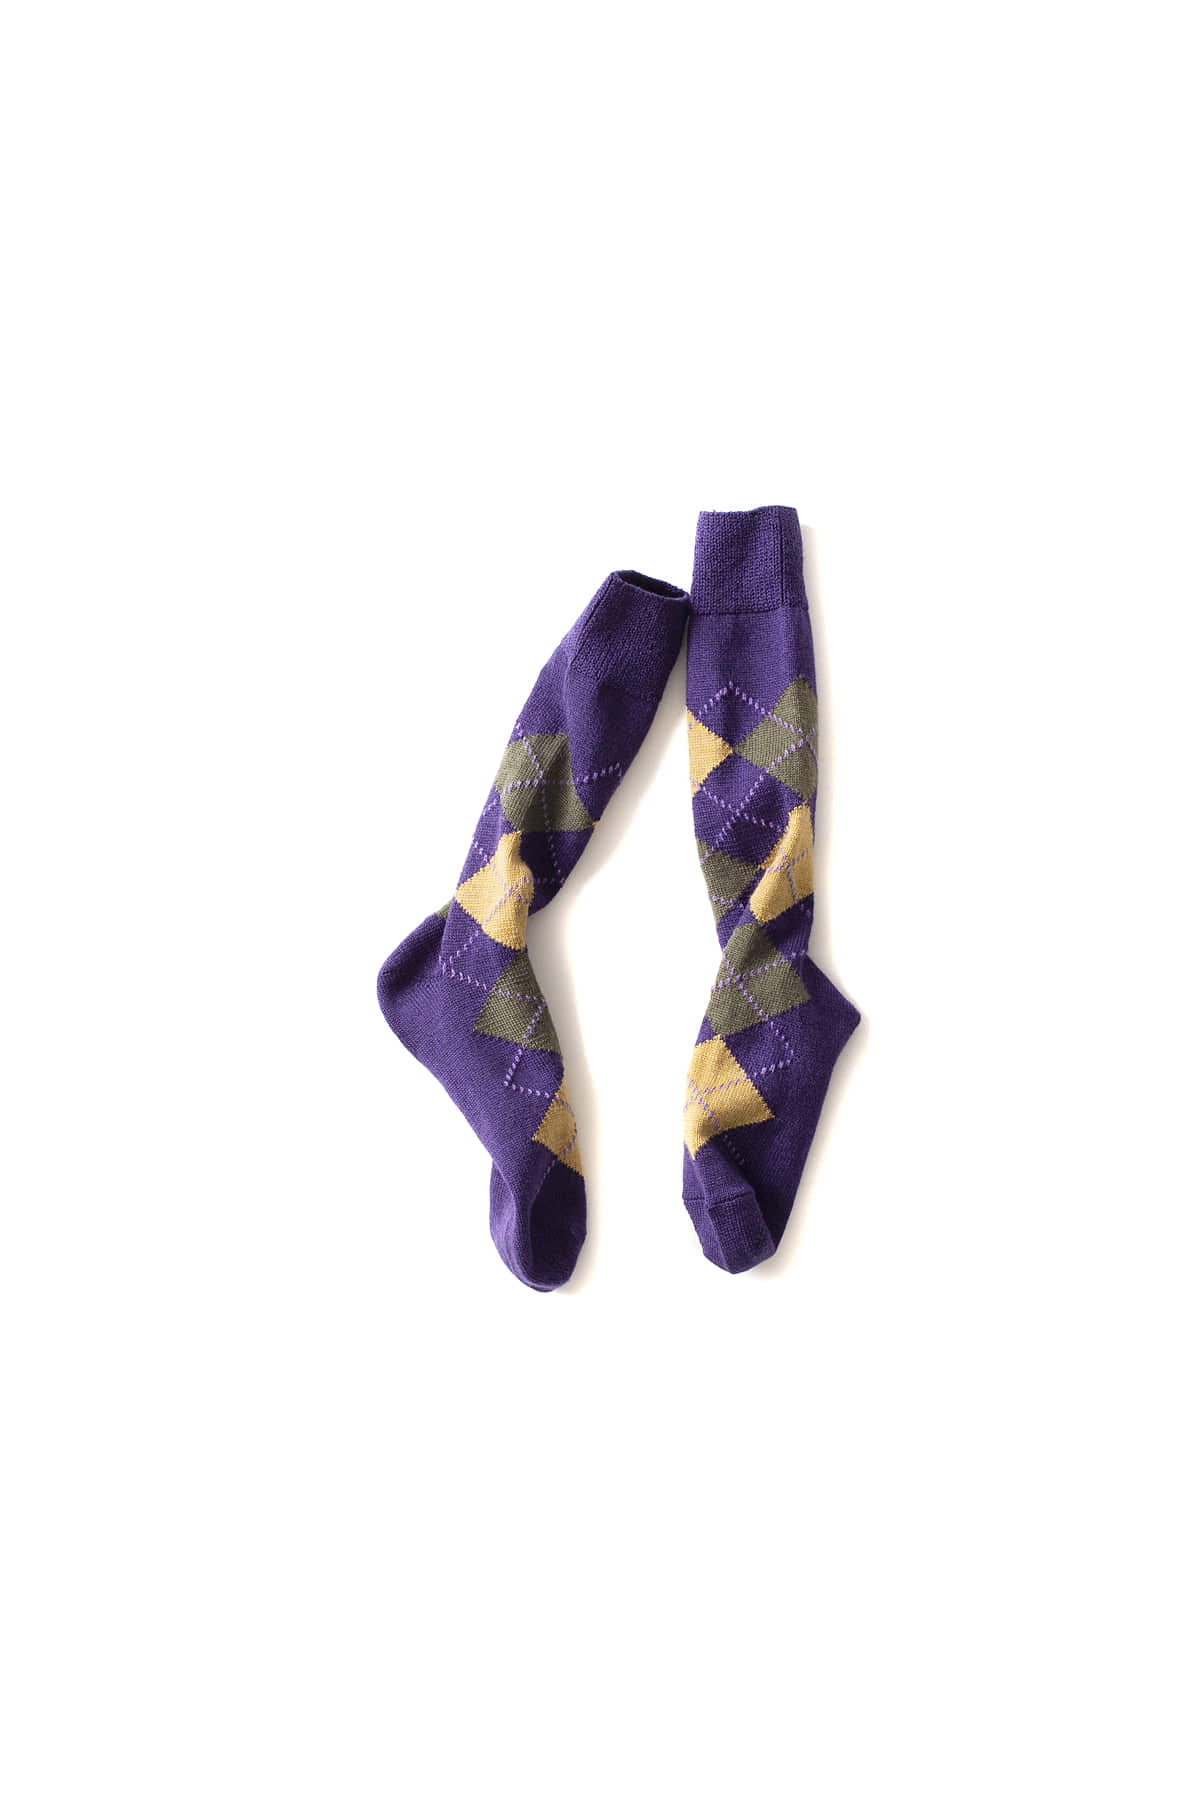 NEEDLES : Jacquard Socks (Purple)